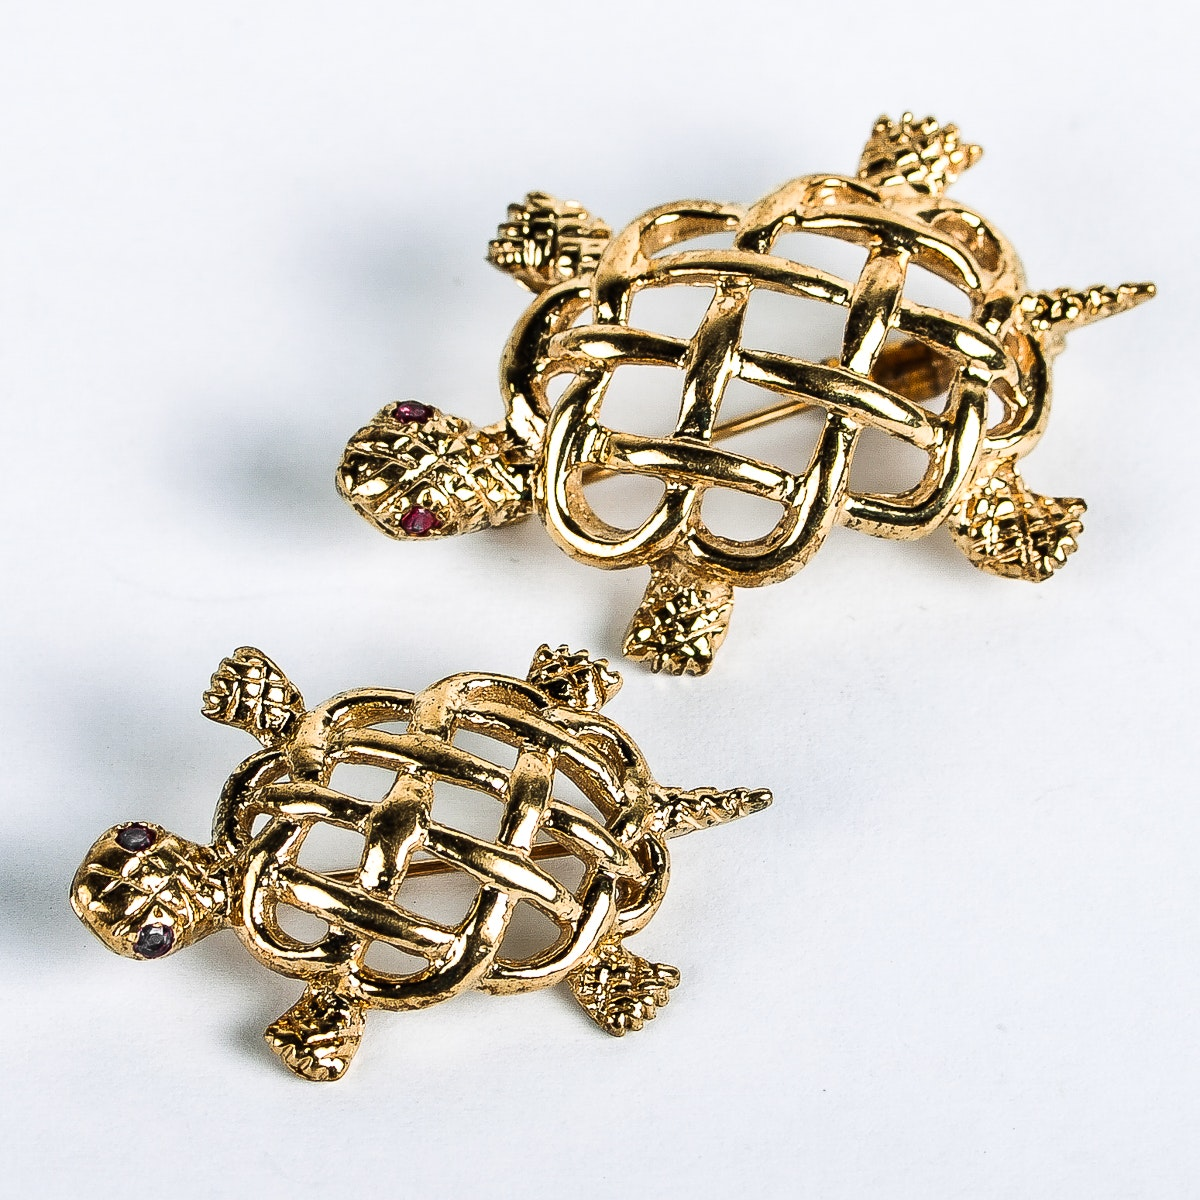 Pair of 14K Yellow Gold and Ruby Turtle Brooches